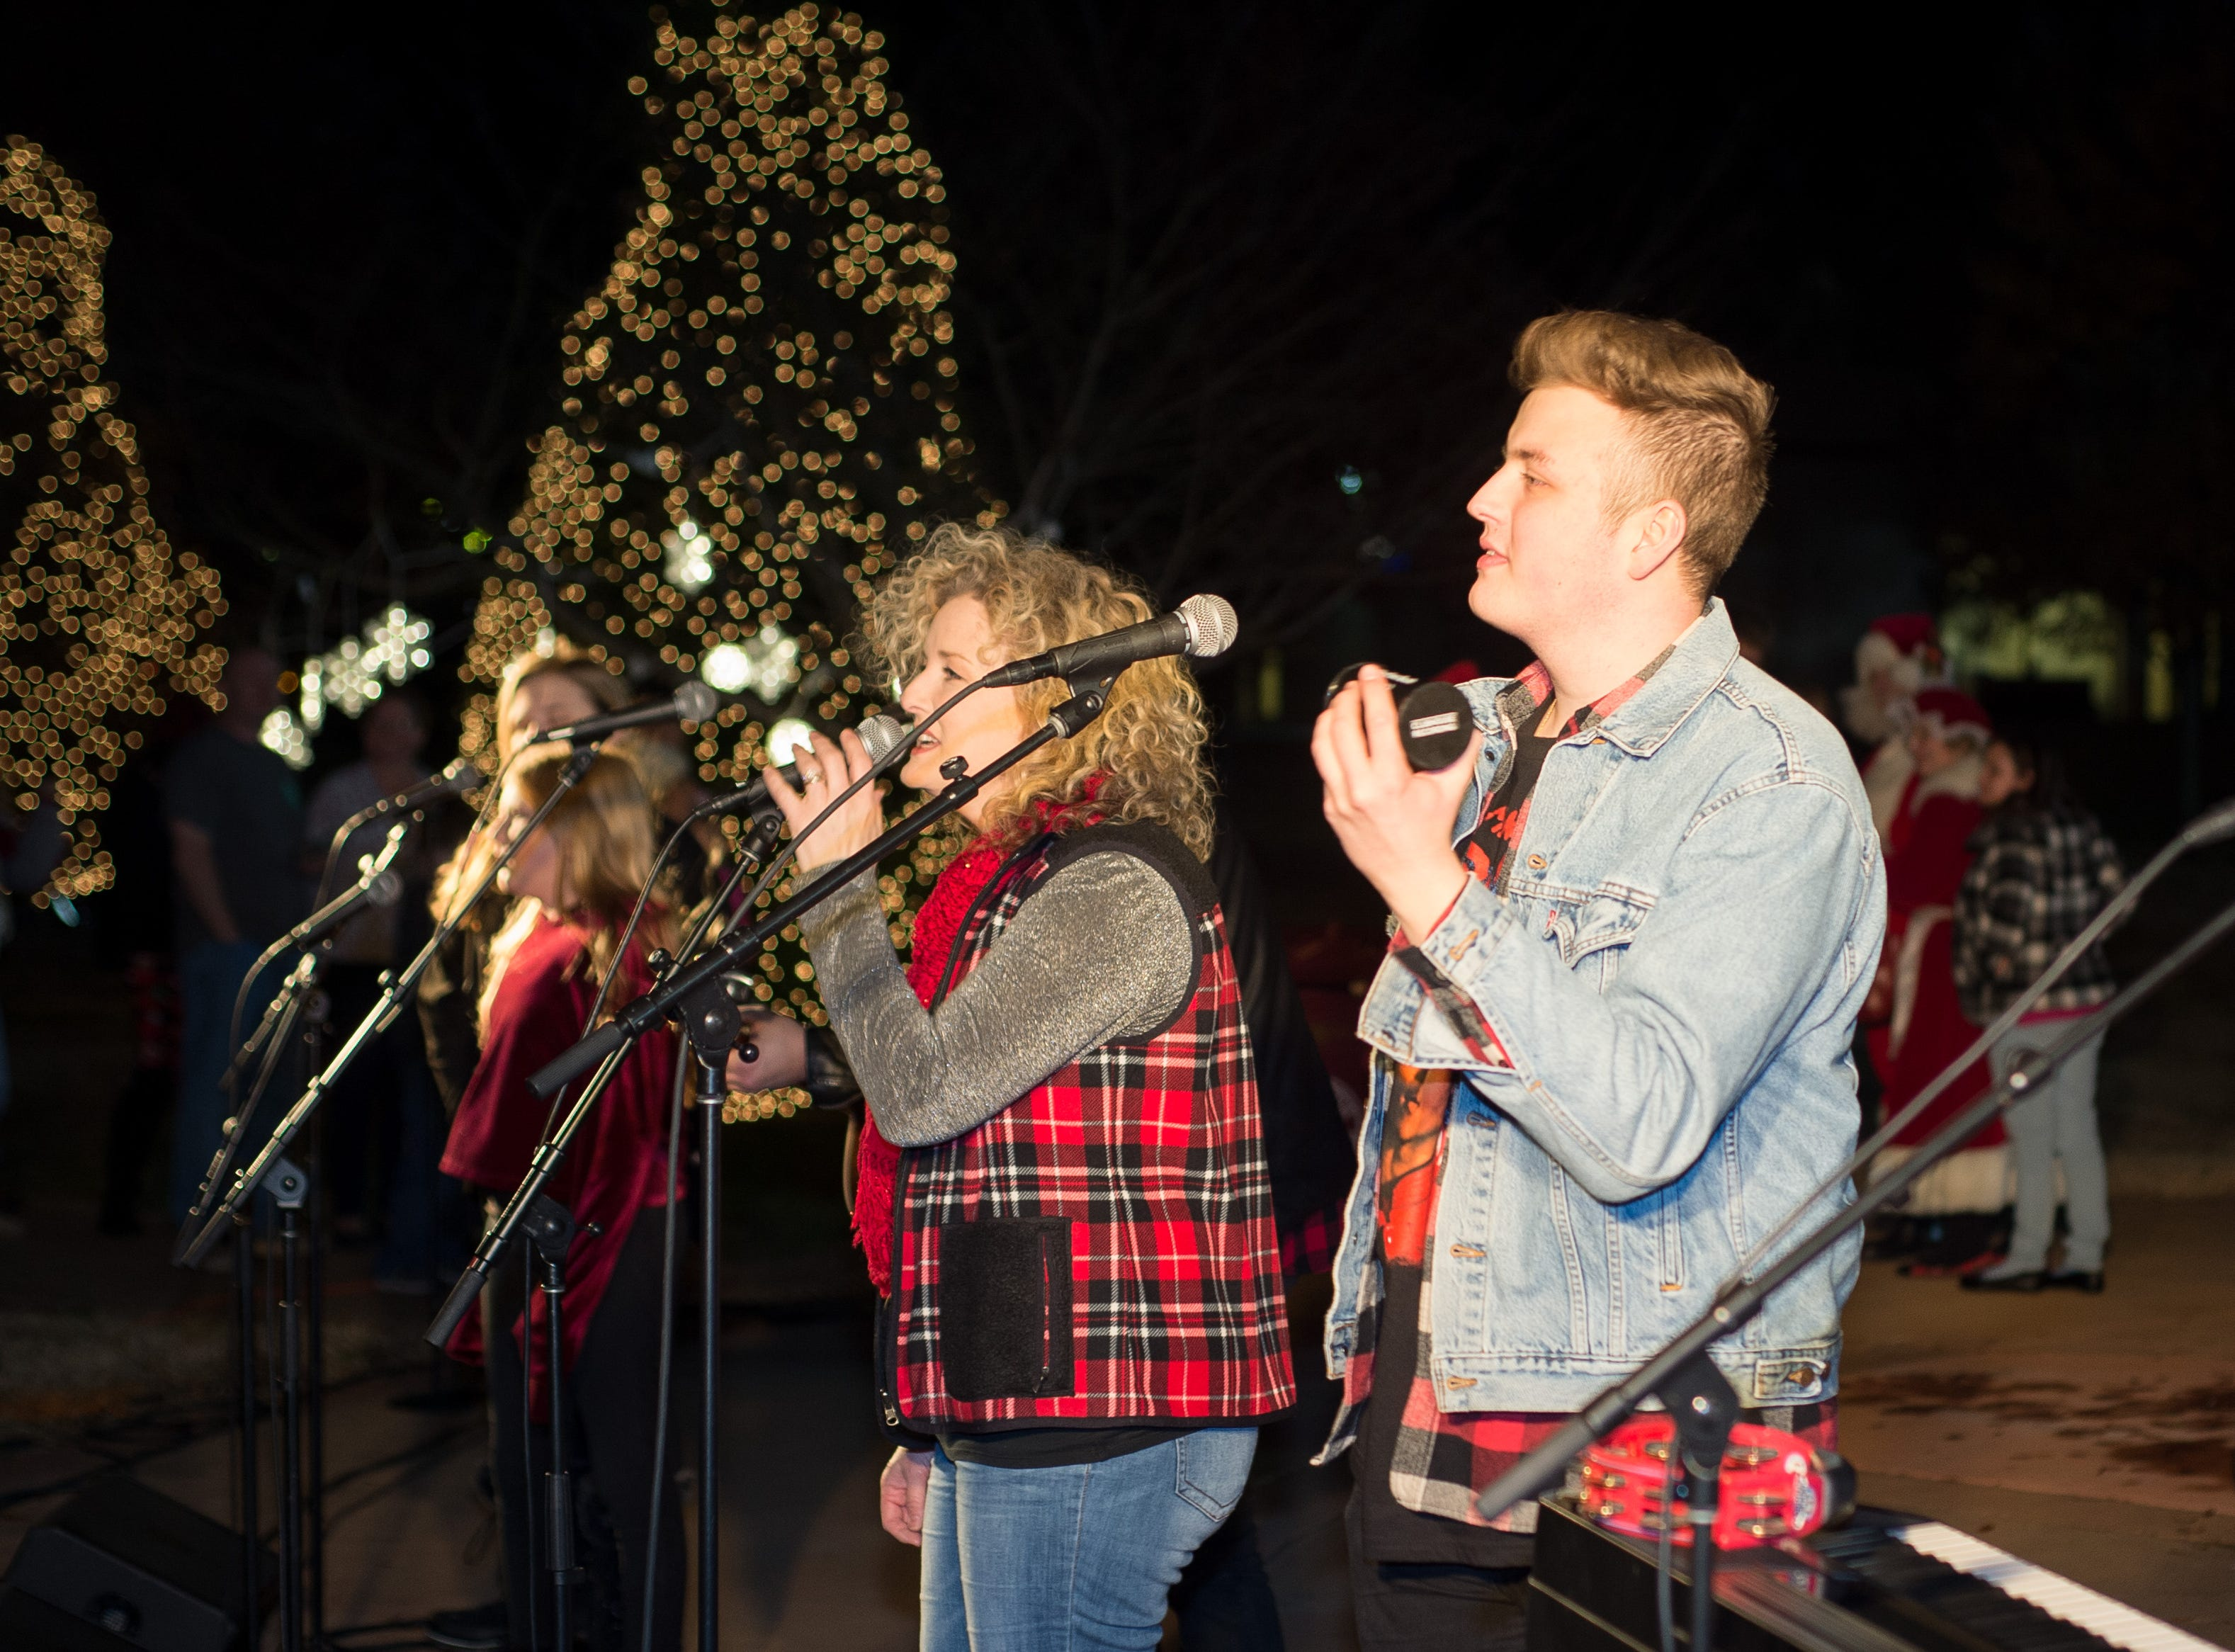 Rockland Road entertains the crowd during the Hendersonville HolidayFest Annual Tree Lighting Ceremony at Memorial Park on Sunday, Nov. 25.